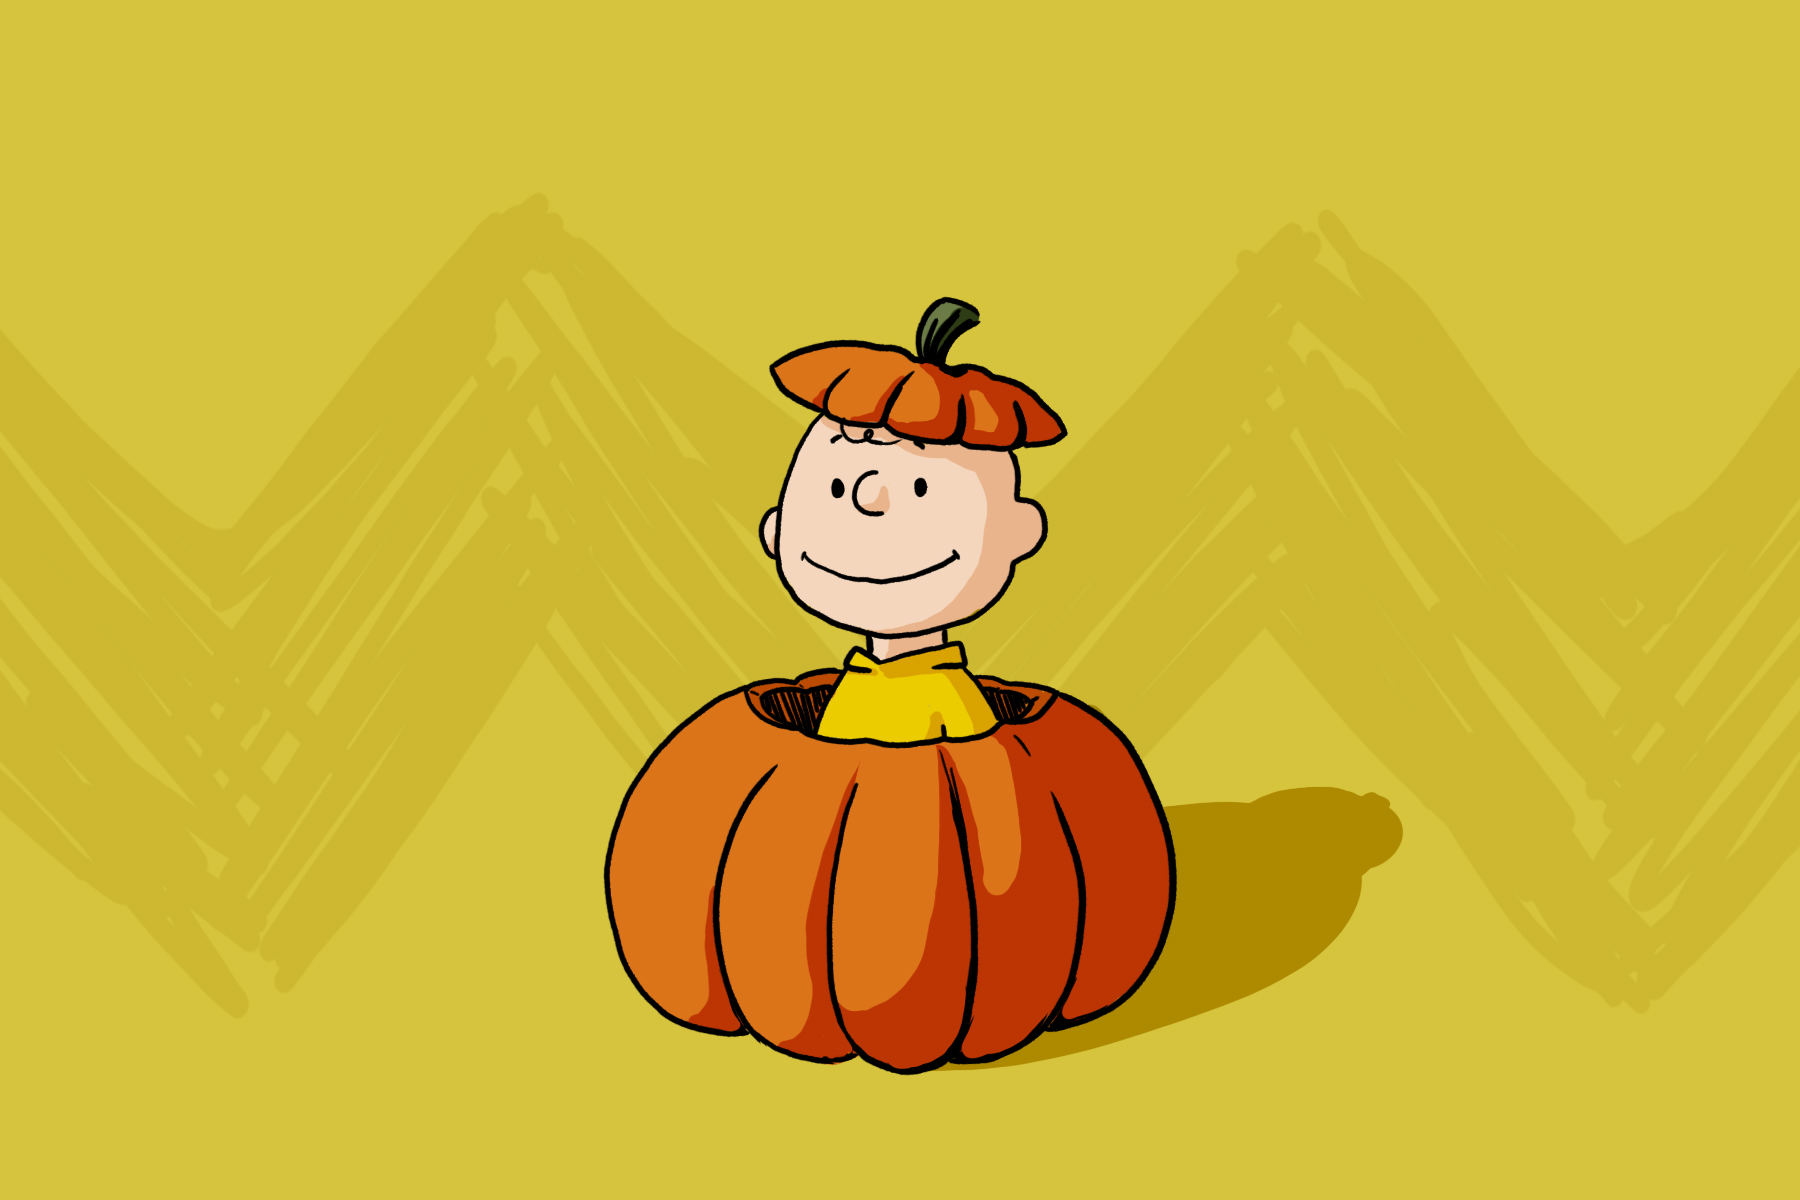 7bfd39cee 'It's the Great Pumpkin, Charlie Brown' Is the Hilarious Unsung Hero of ' Peanuts' Holiday Specials